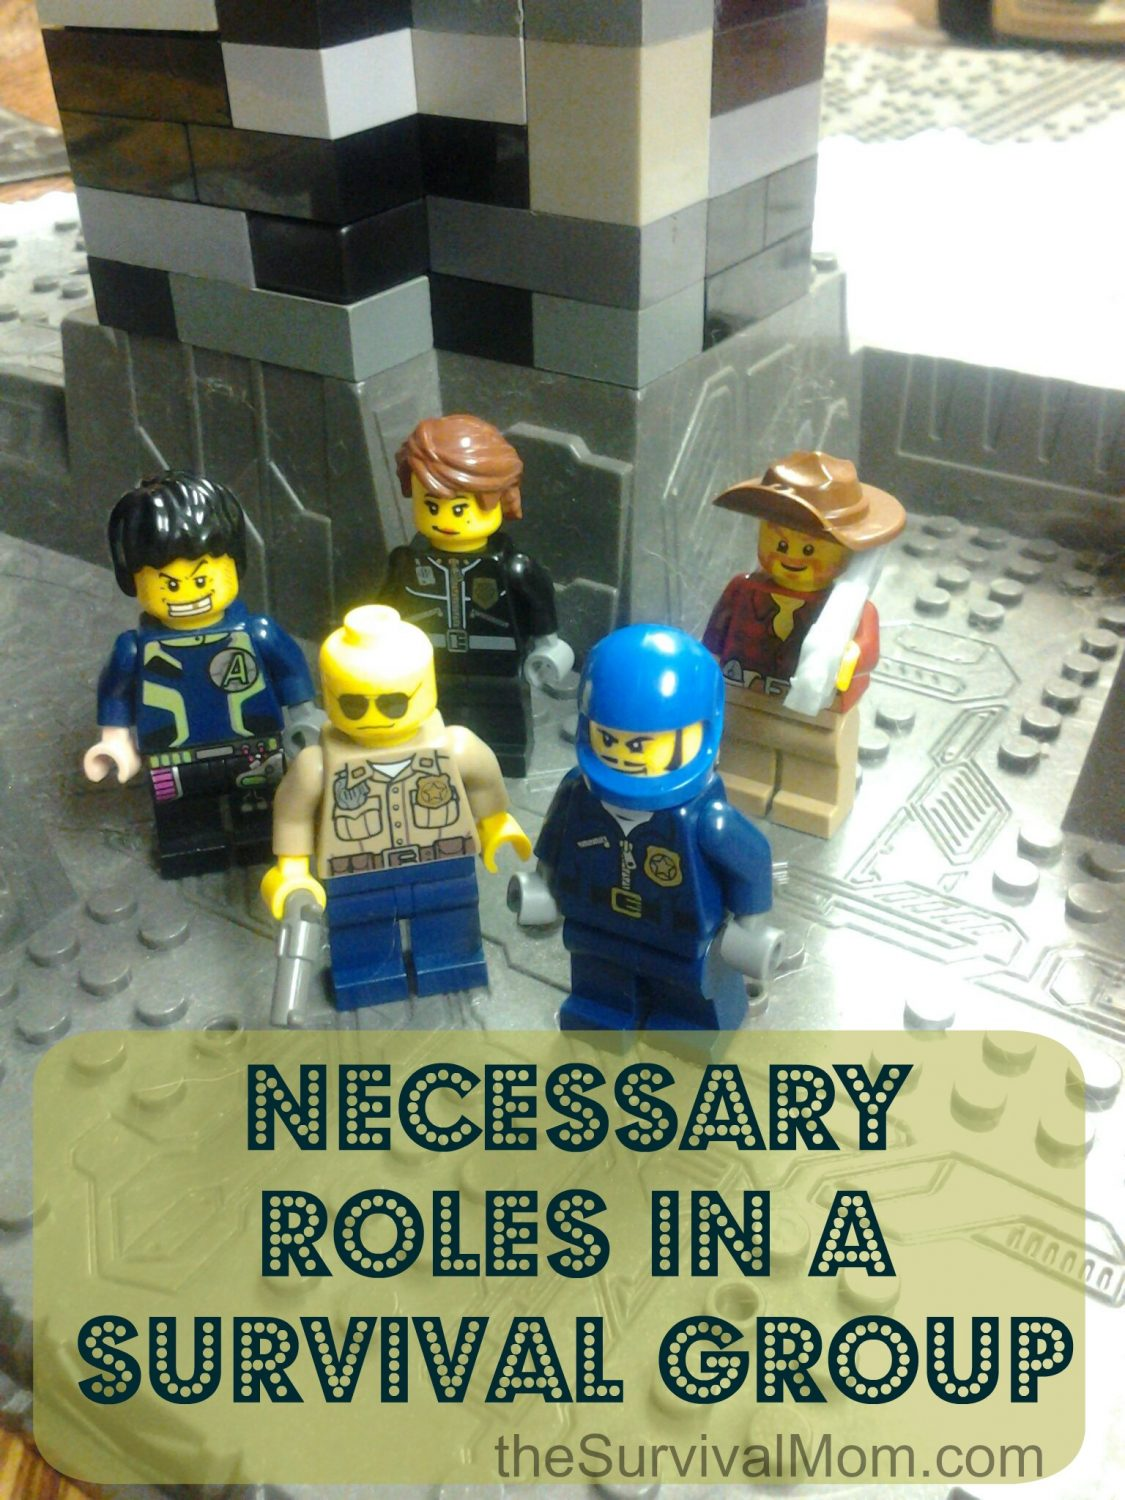 Necessary Roles In a Survival Group